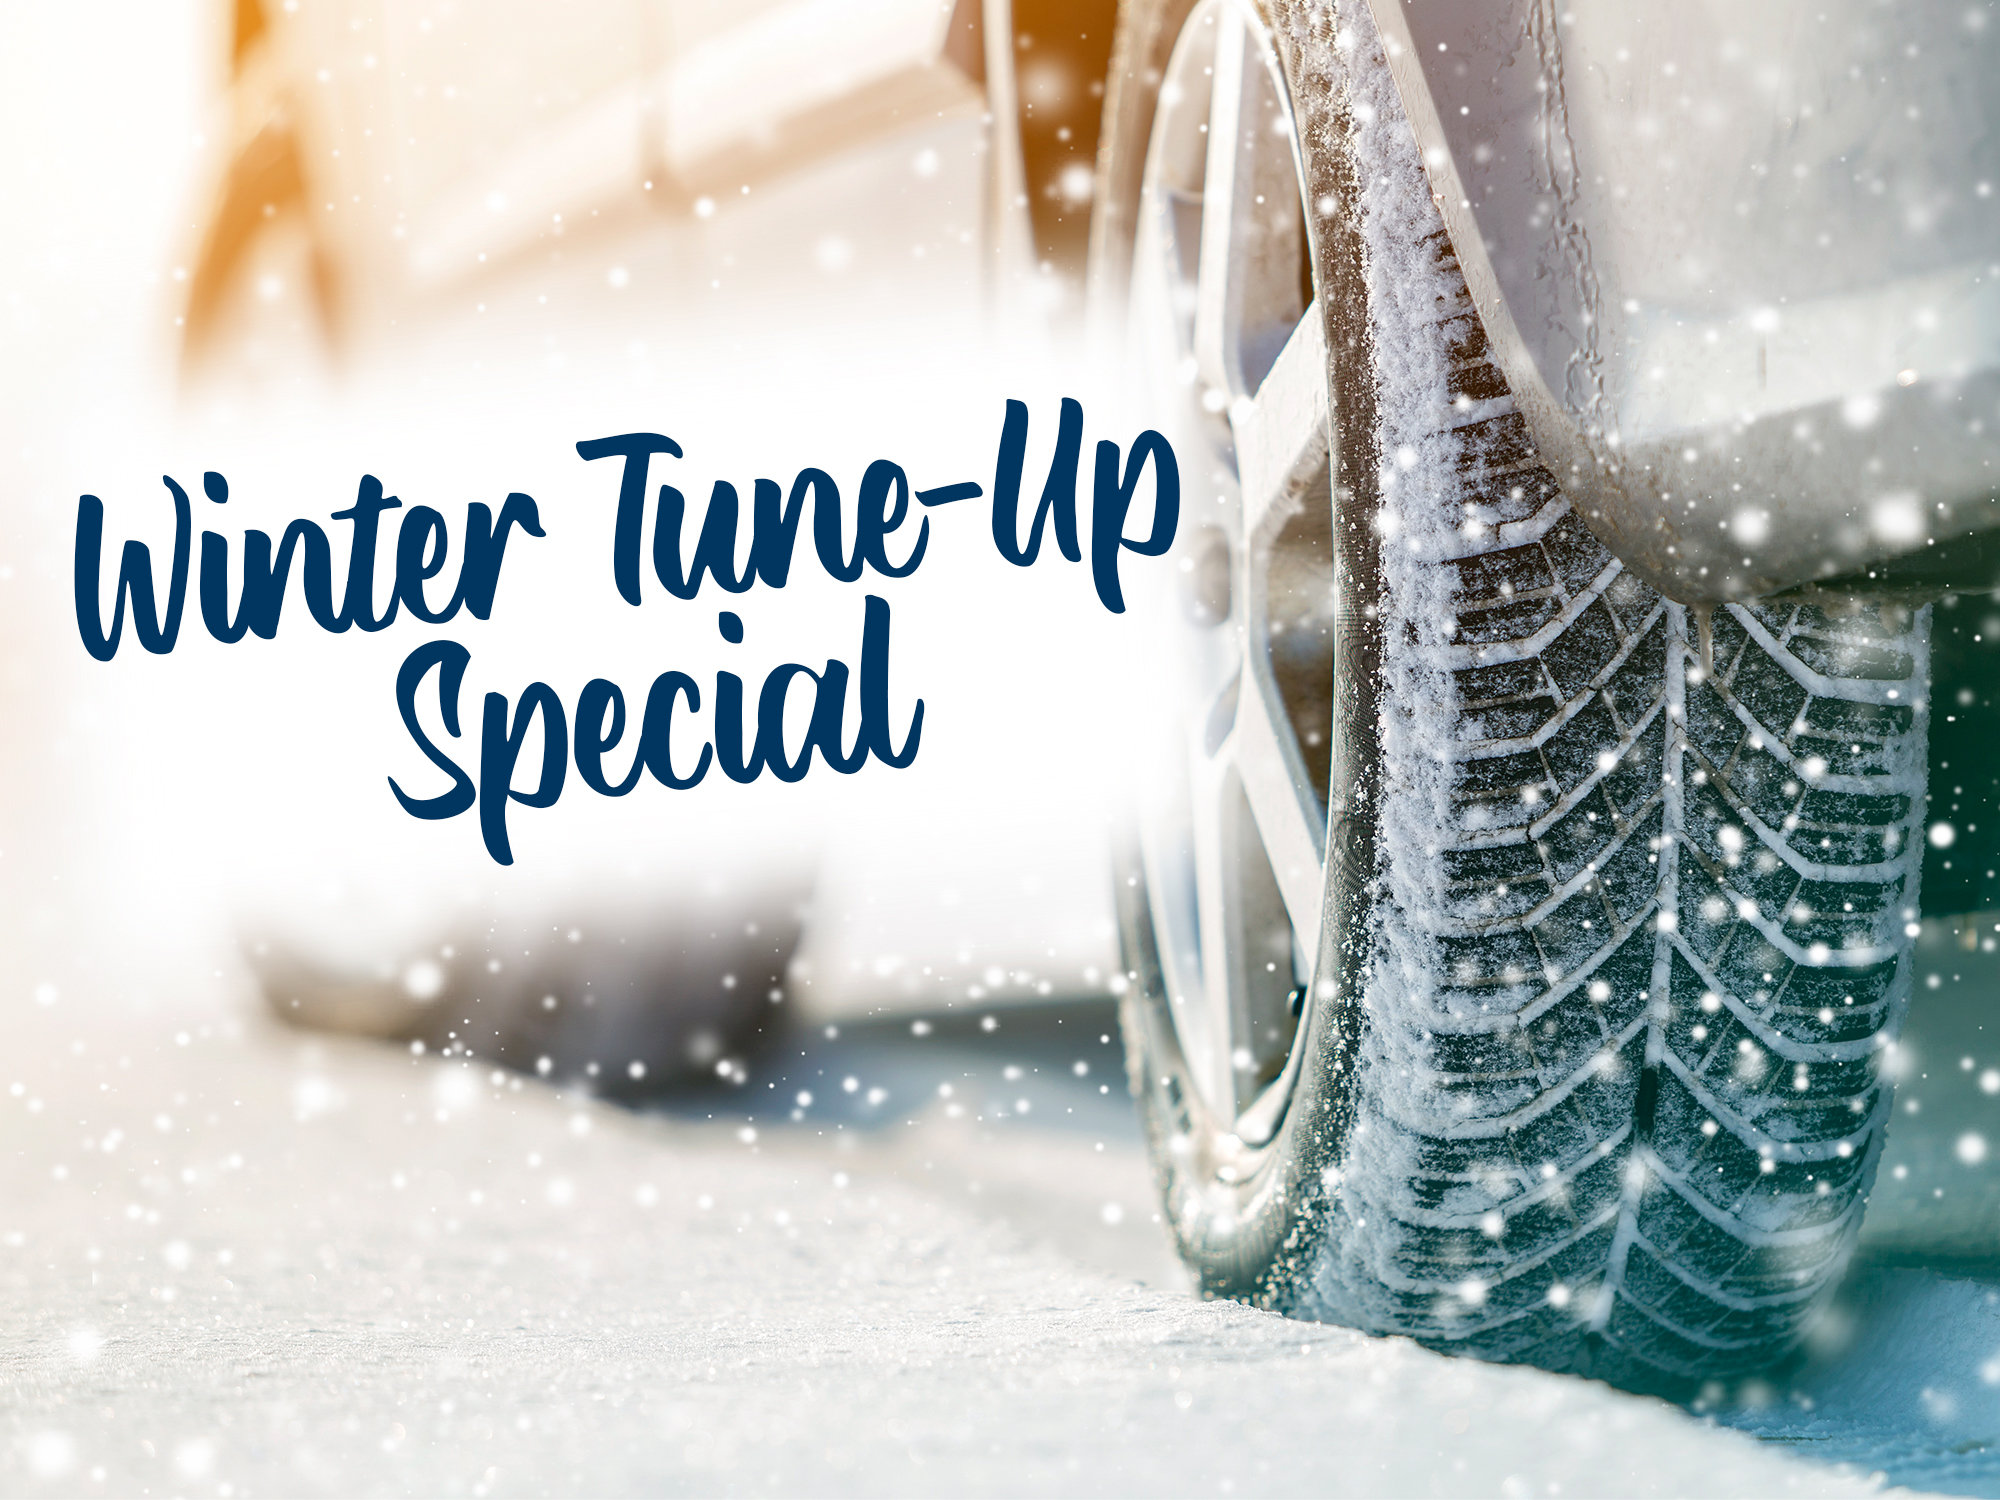 Winter Tune Up Special